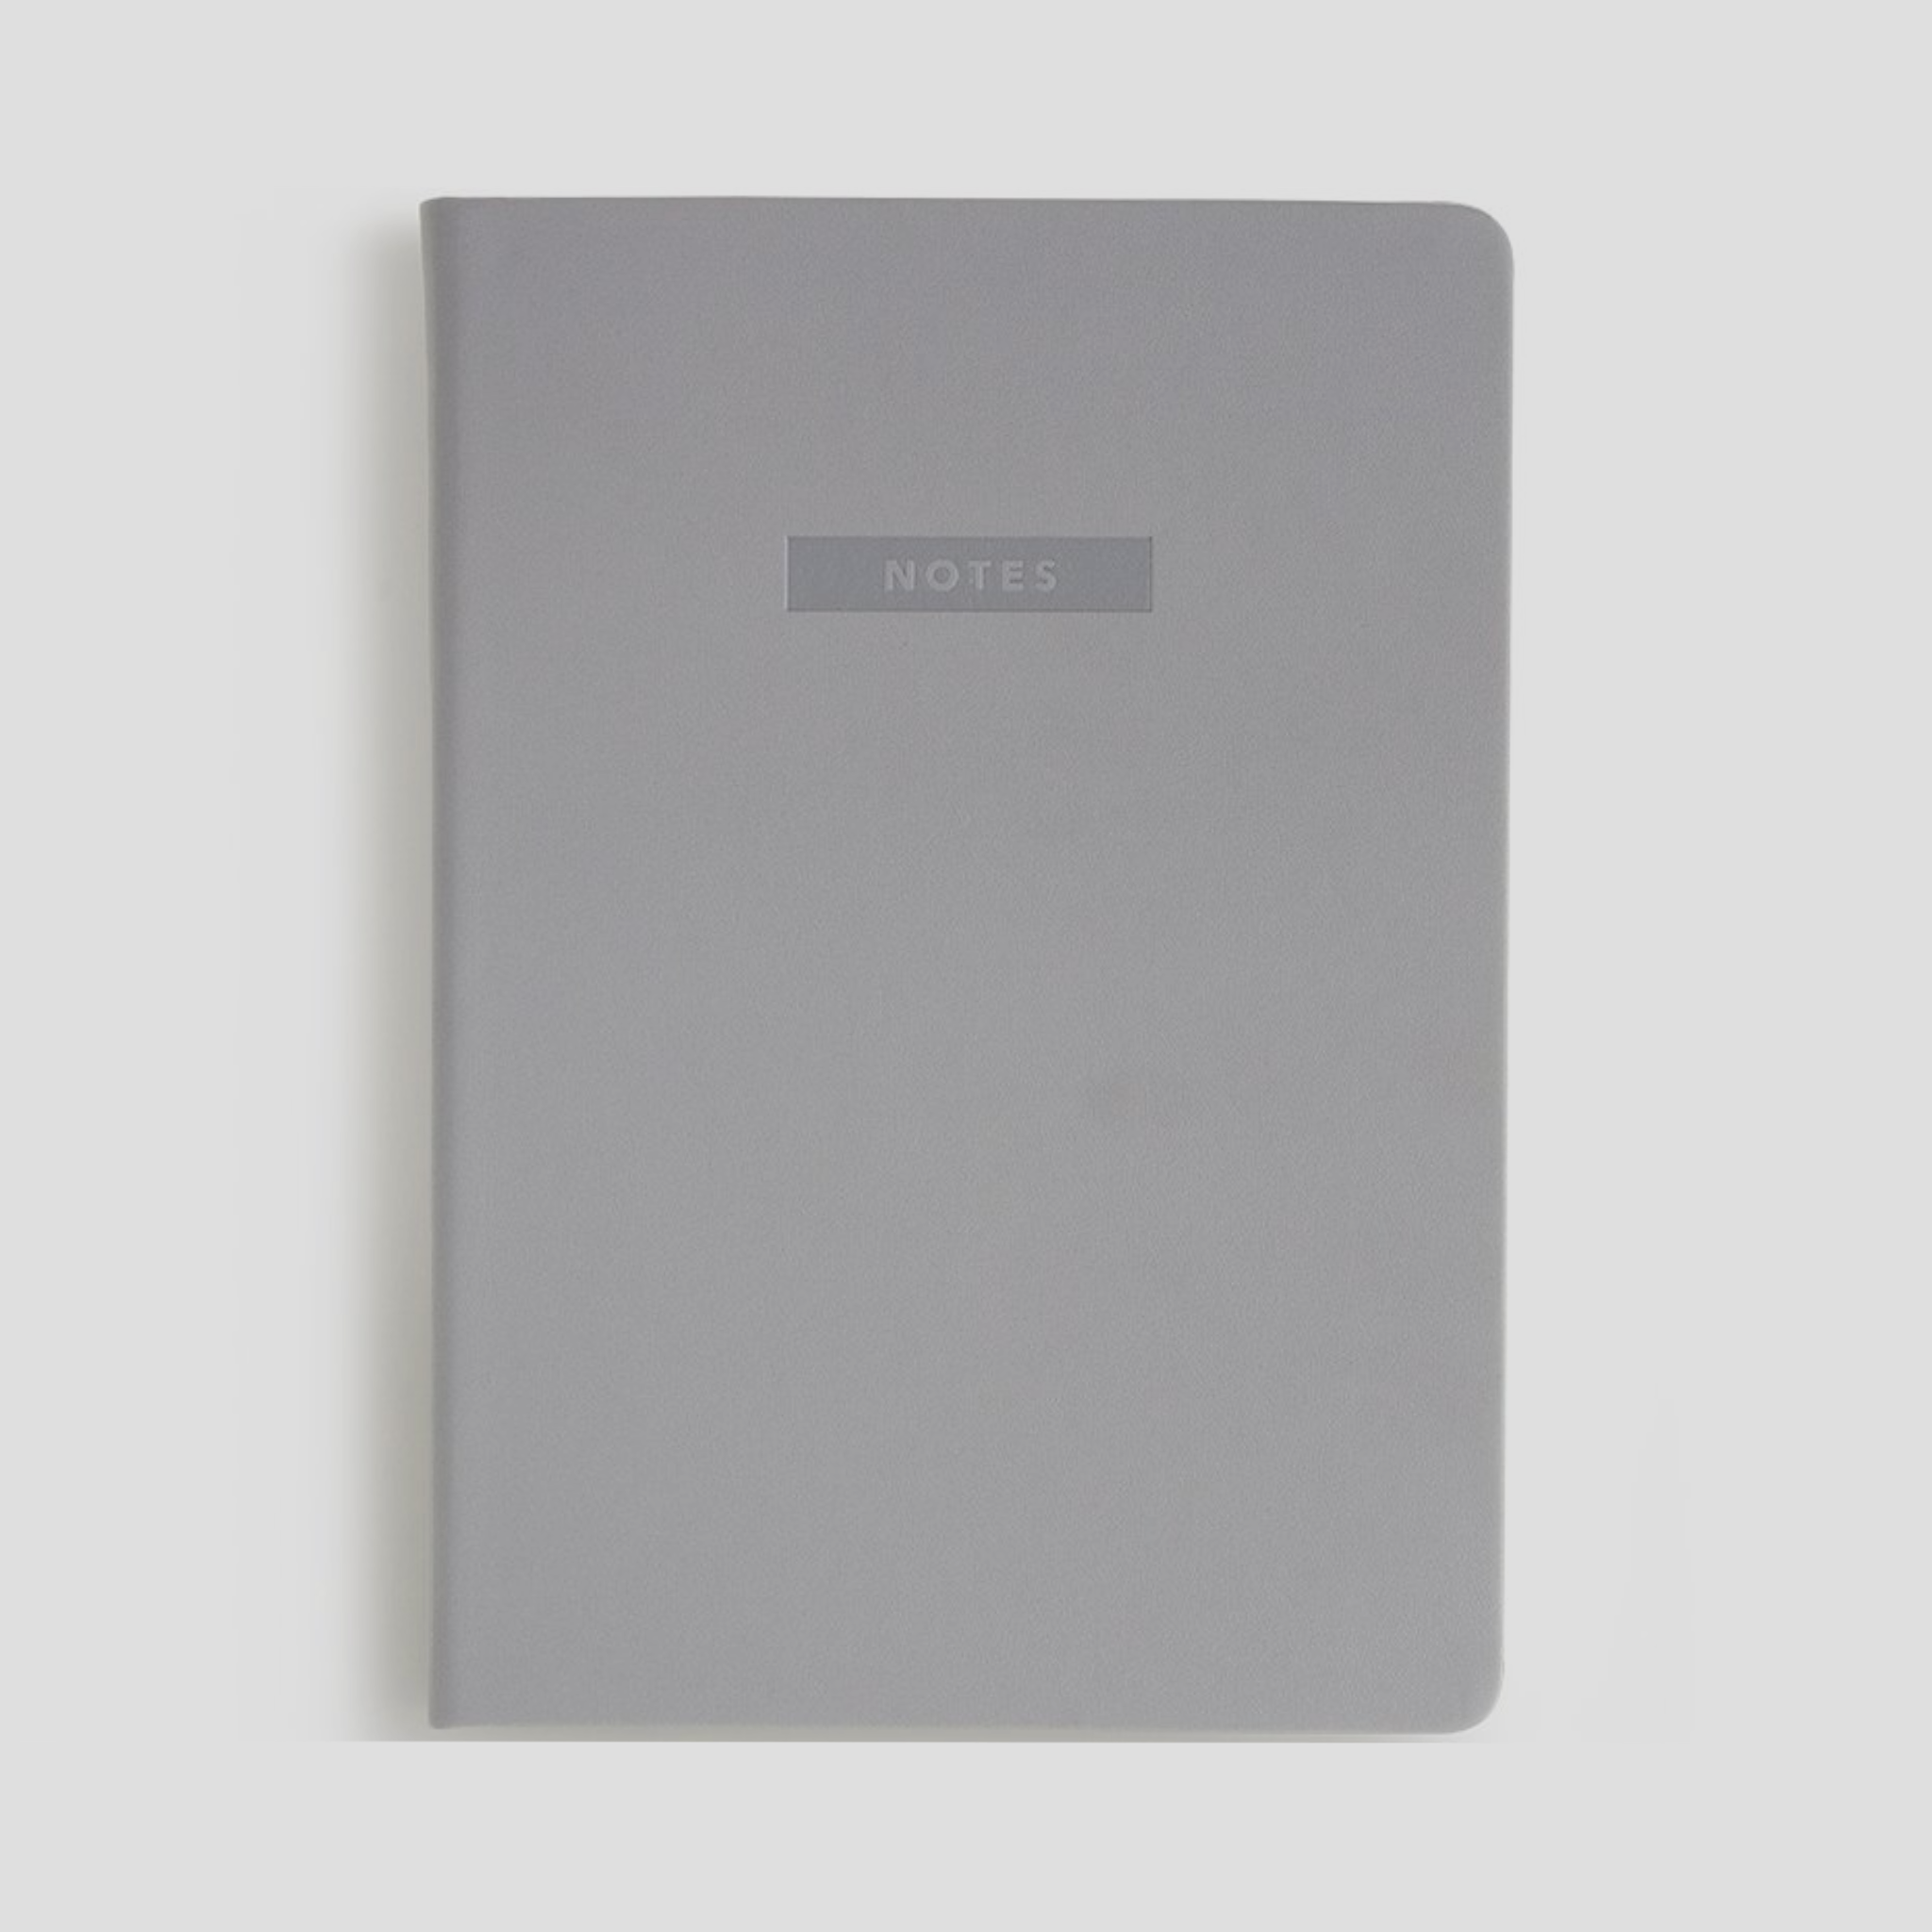 Notes Journal - Grey